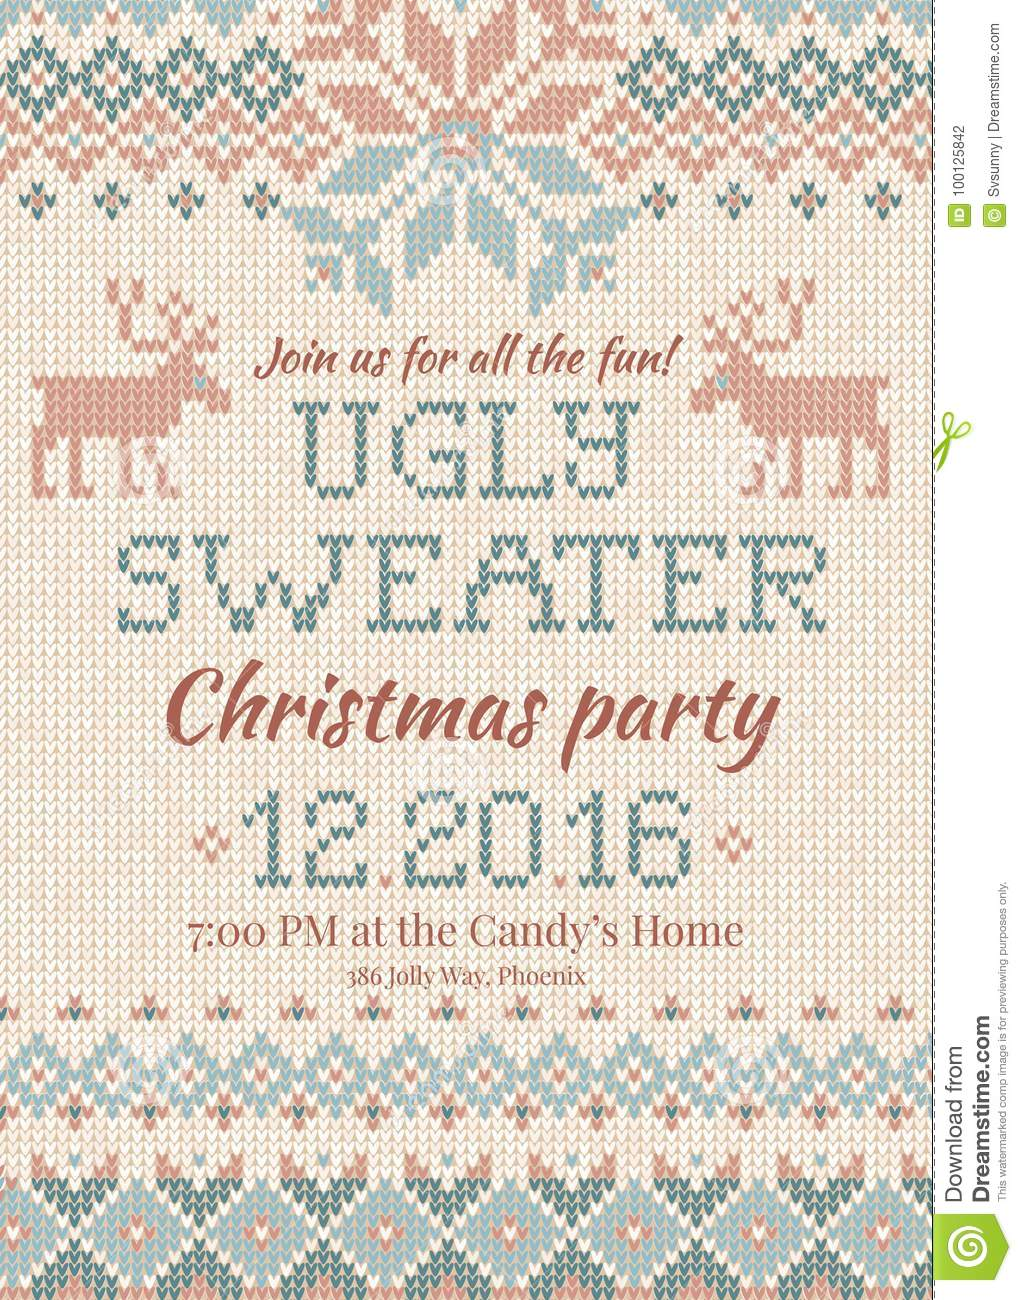 Ugly Sweater Christmas Party Invite. Knitted Background Pattern ...